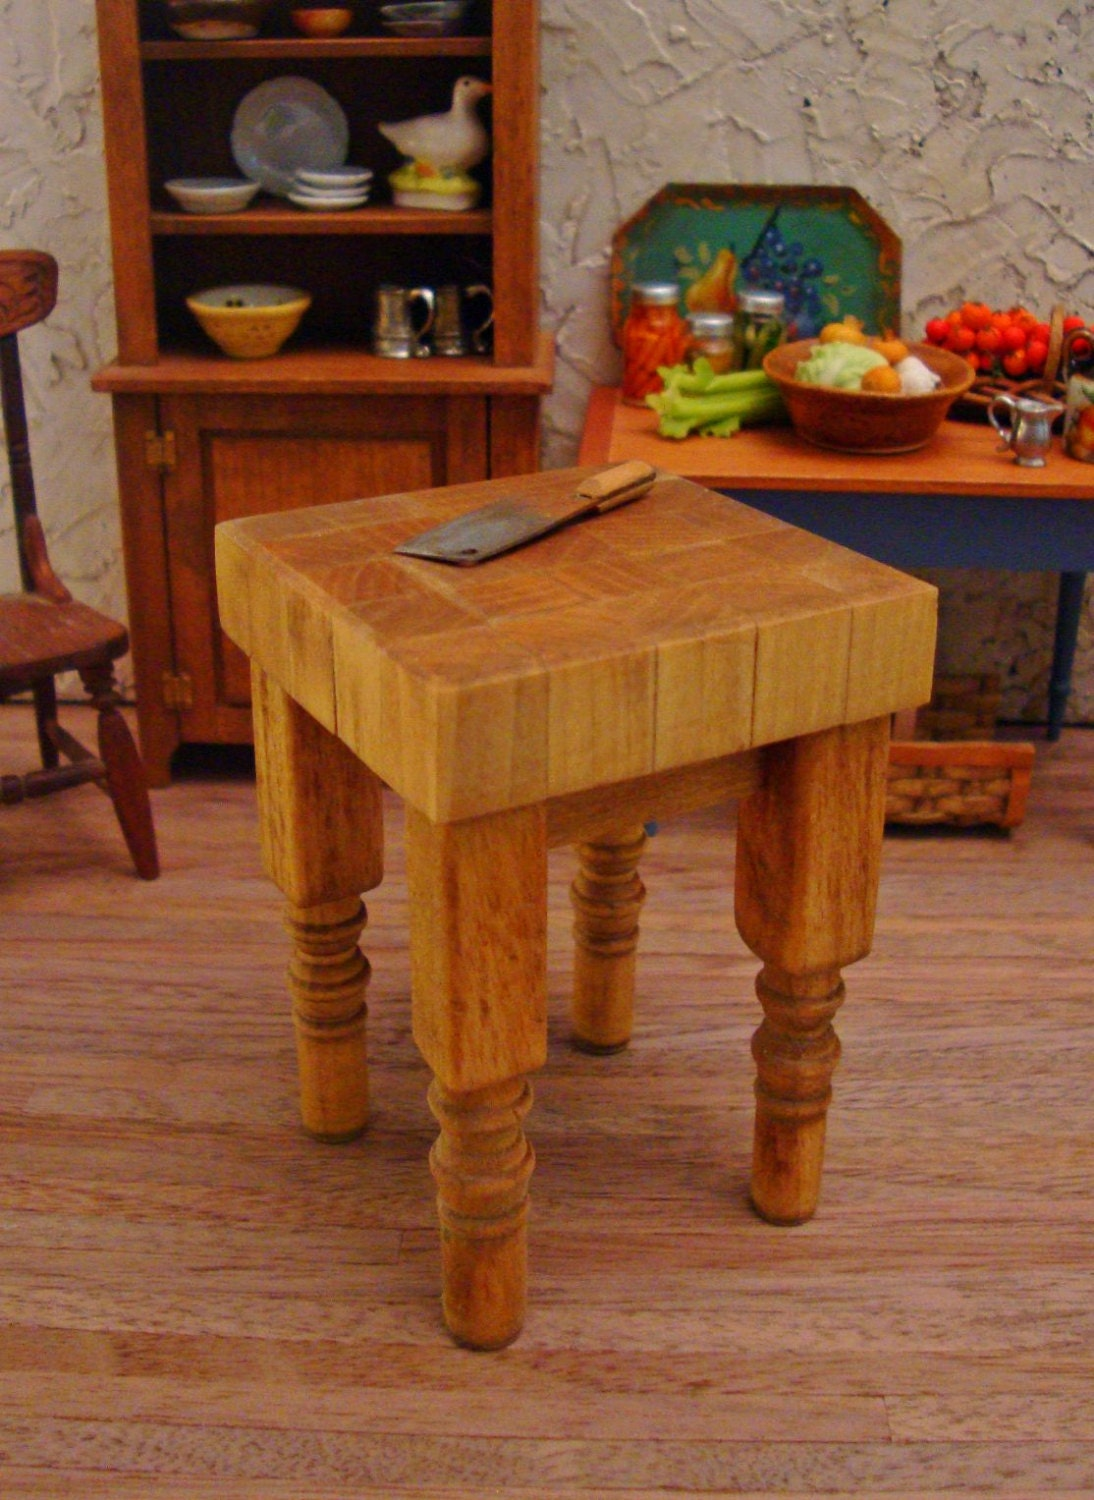 Butcher block kitchen work table 1 12 scale by westonminiature - Butcher block kitchen work table ...